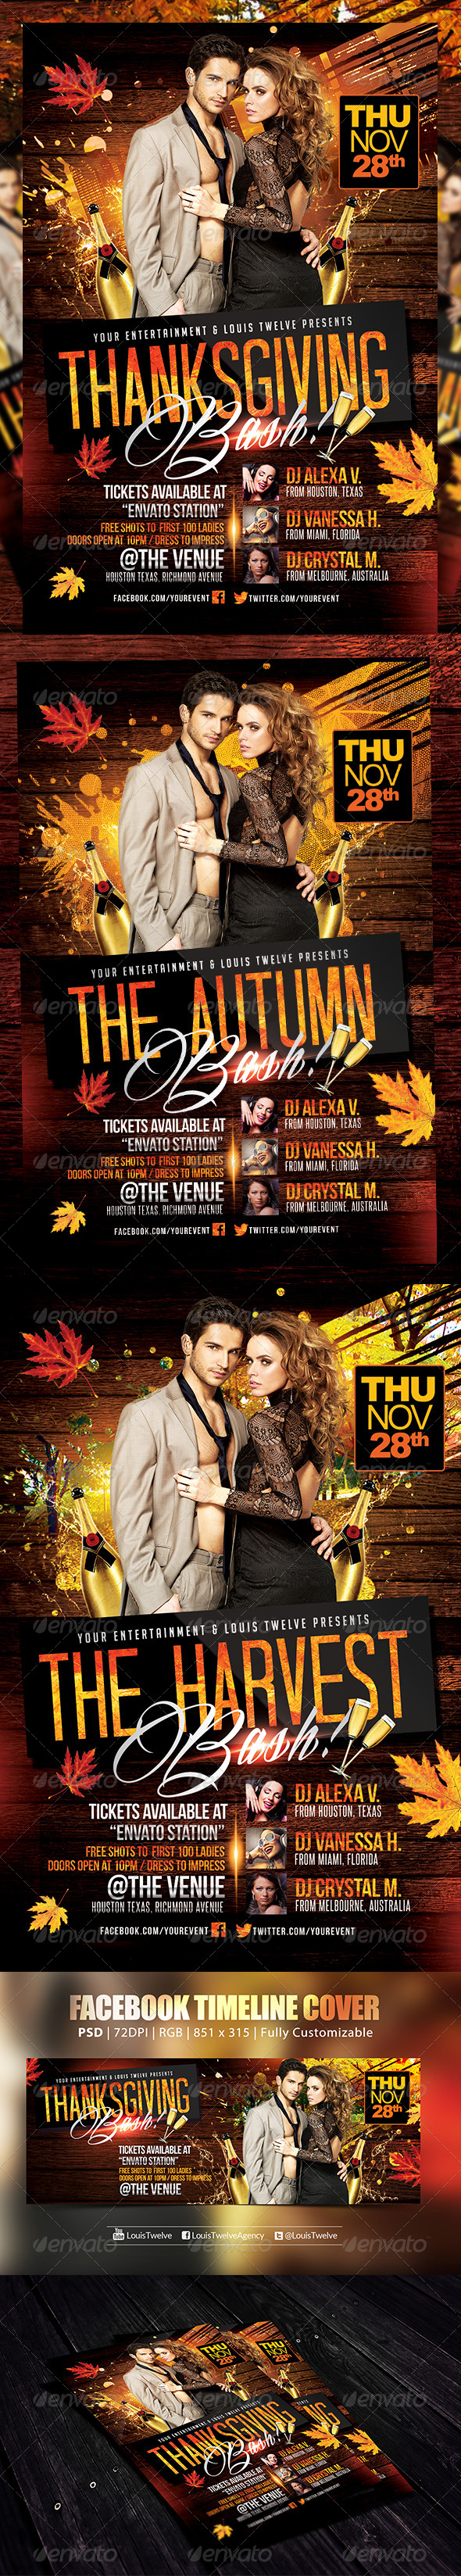 GraphicRiver Thanksgiving or Autumn Bash Flyer & FB Cover 6113130